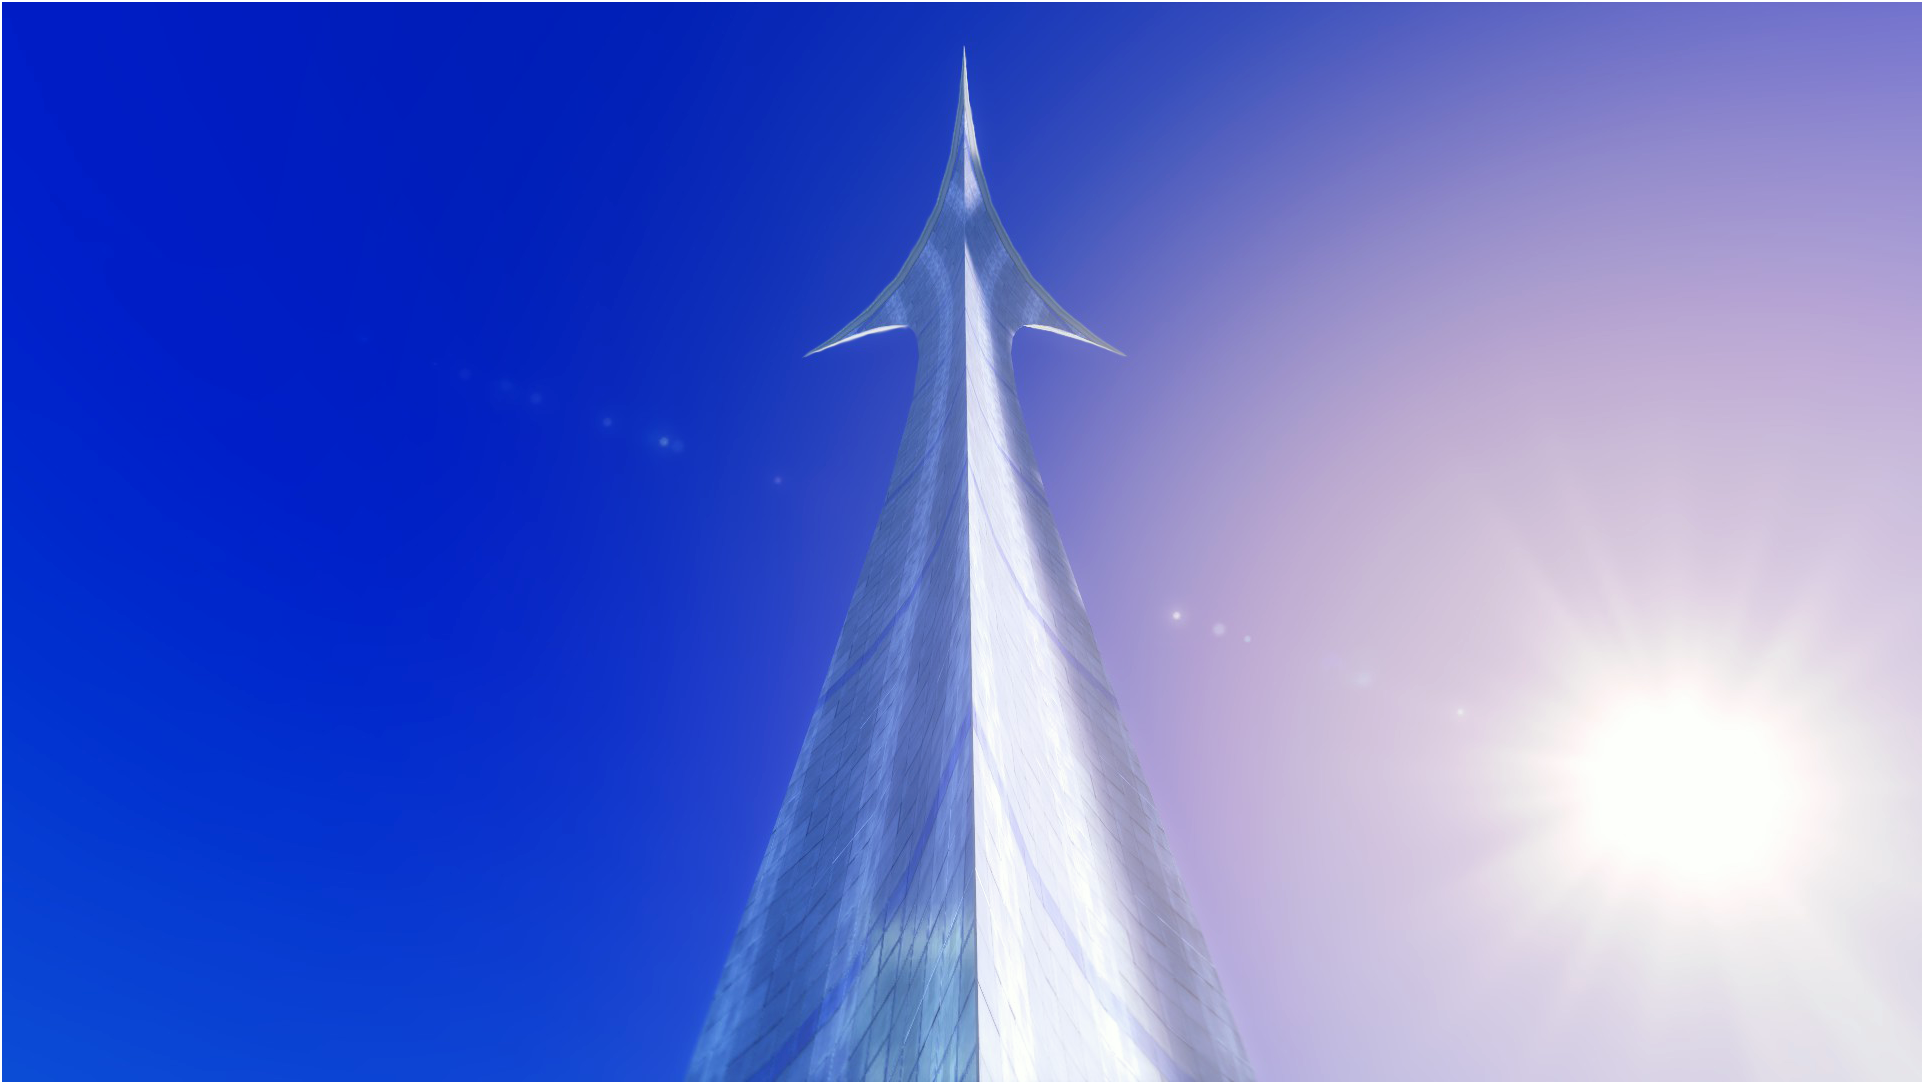 Mirror's Edge_0101_JTC.png